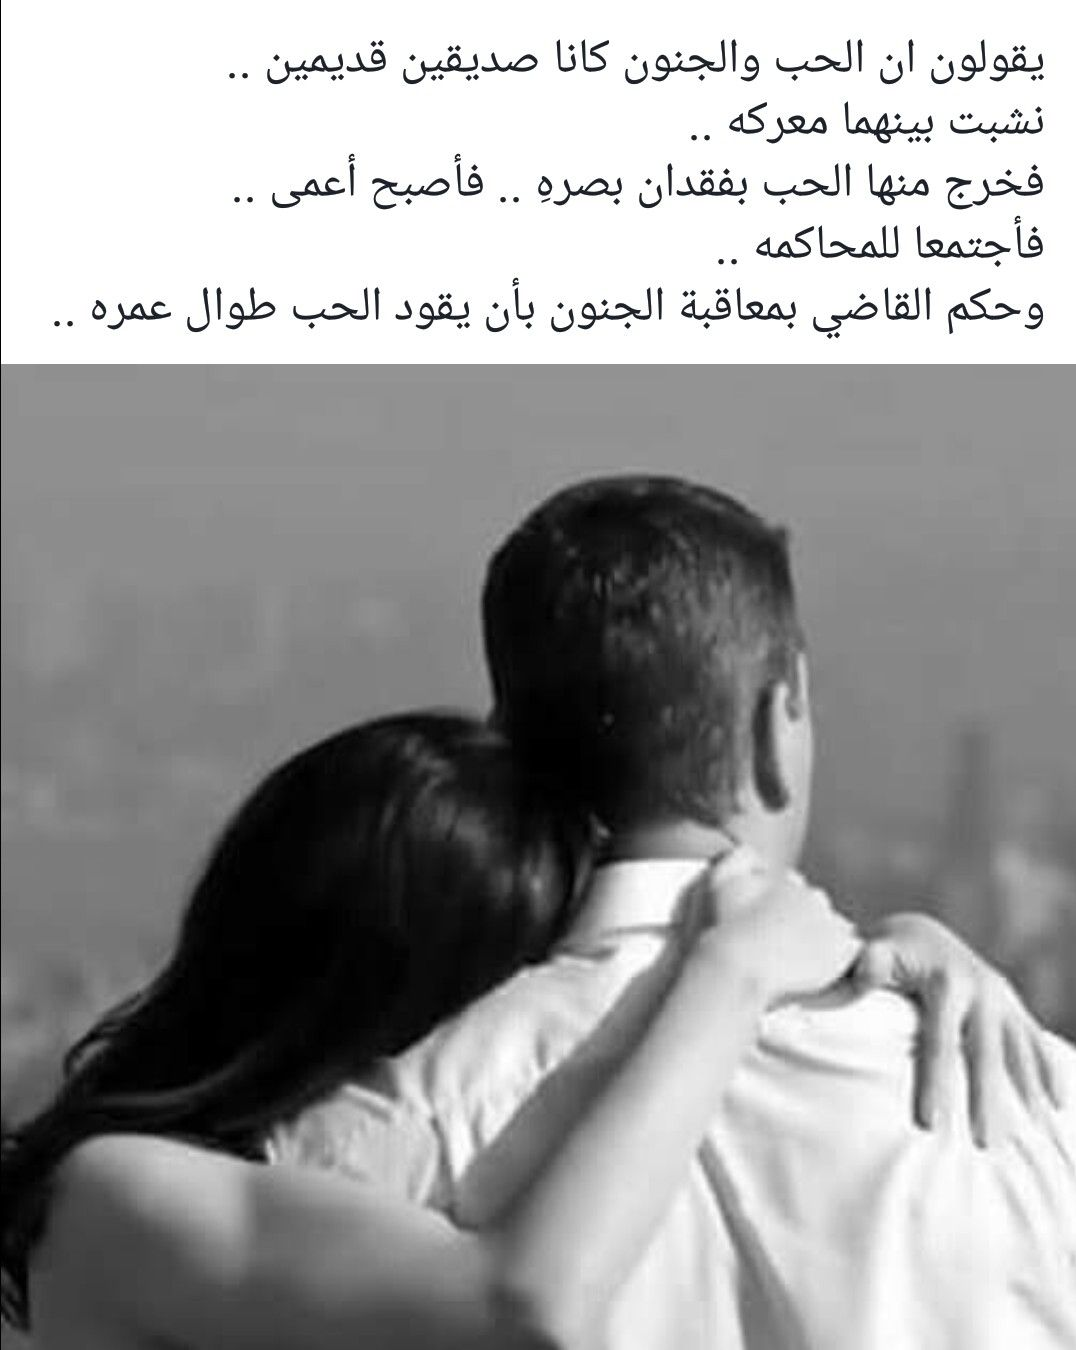 Pin by La rose blanche on love | Love quotes, Arabic quotes